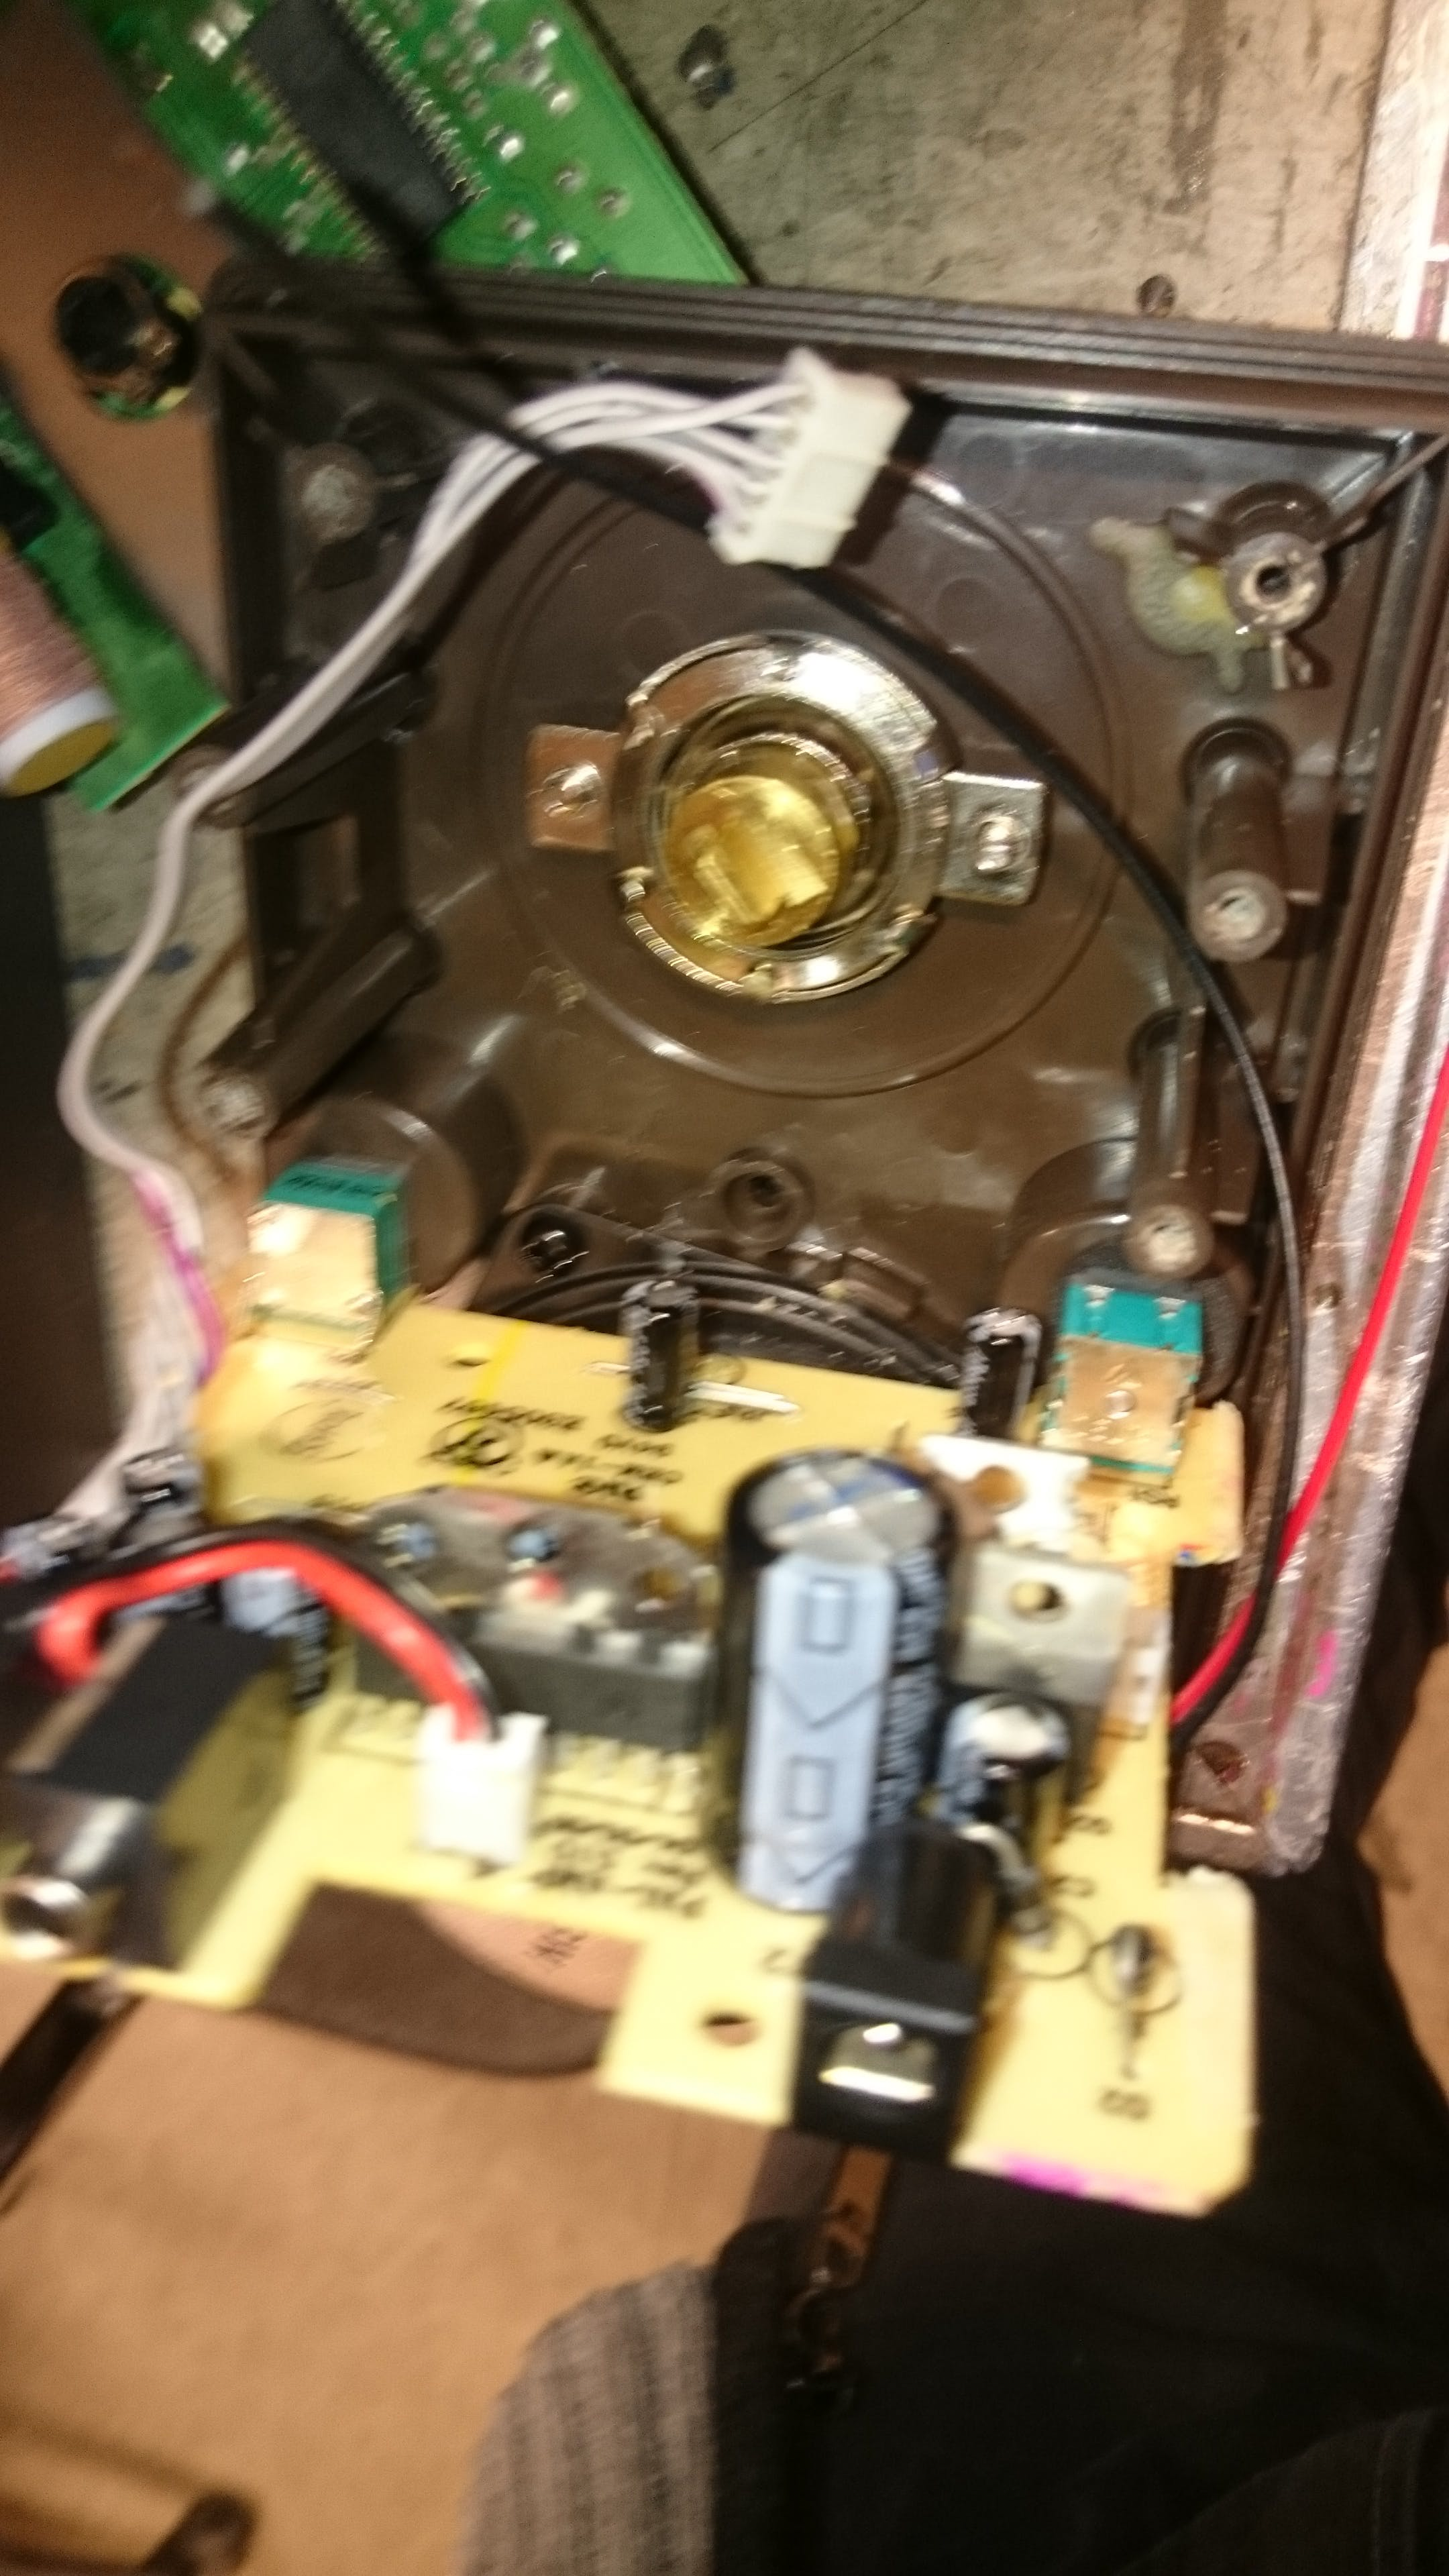 The inside of the radio with the tuner PCB removed